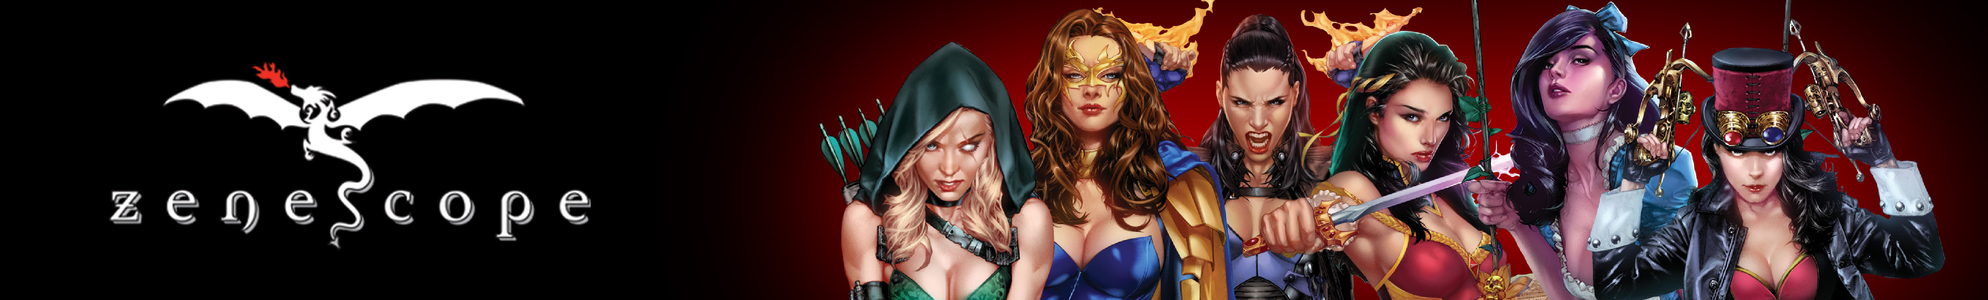 Zenescope Entertainment Inc